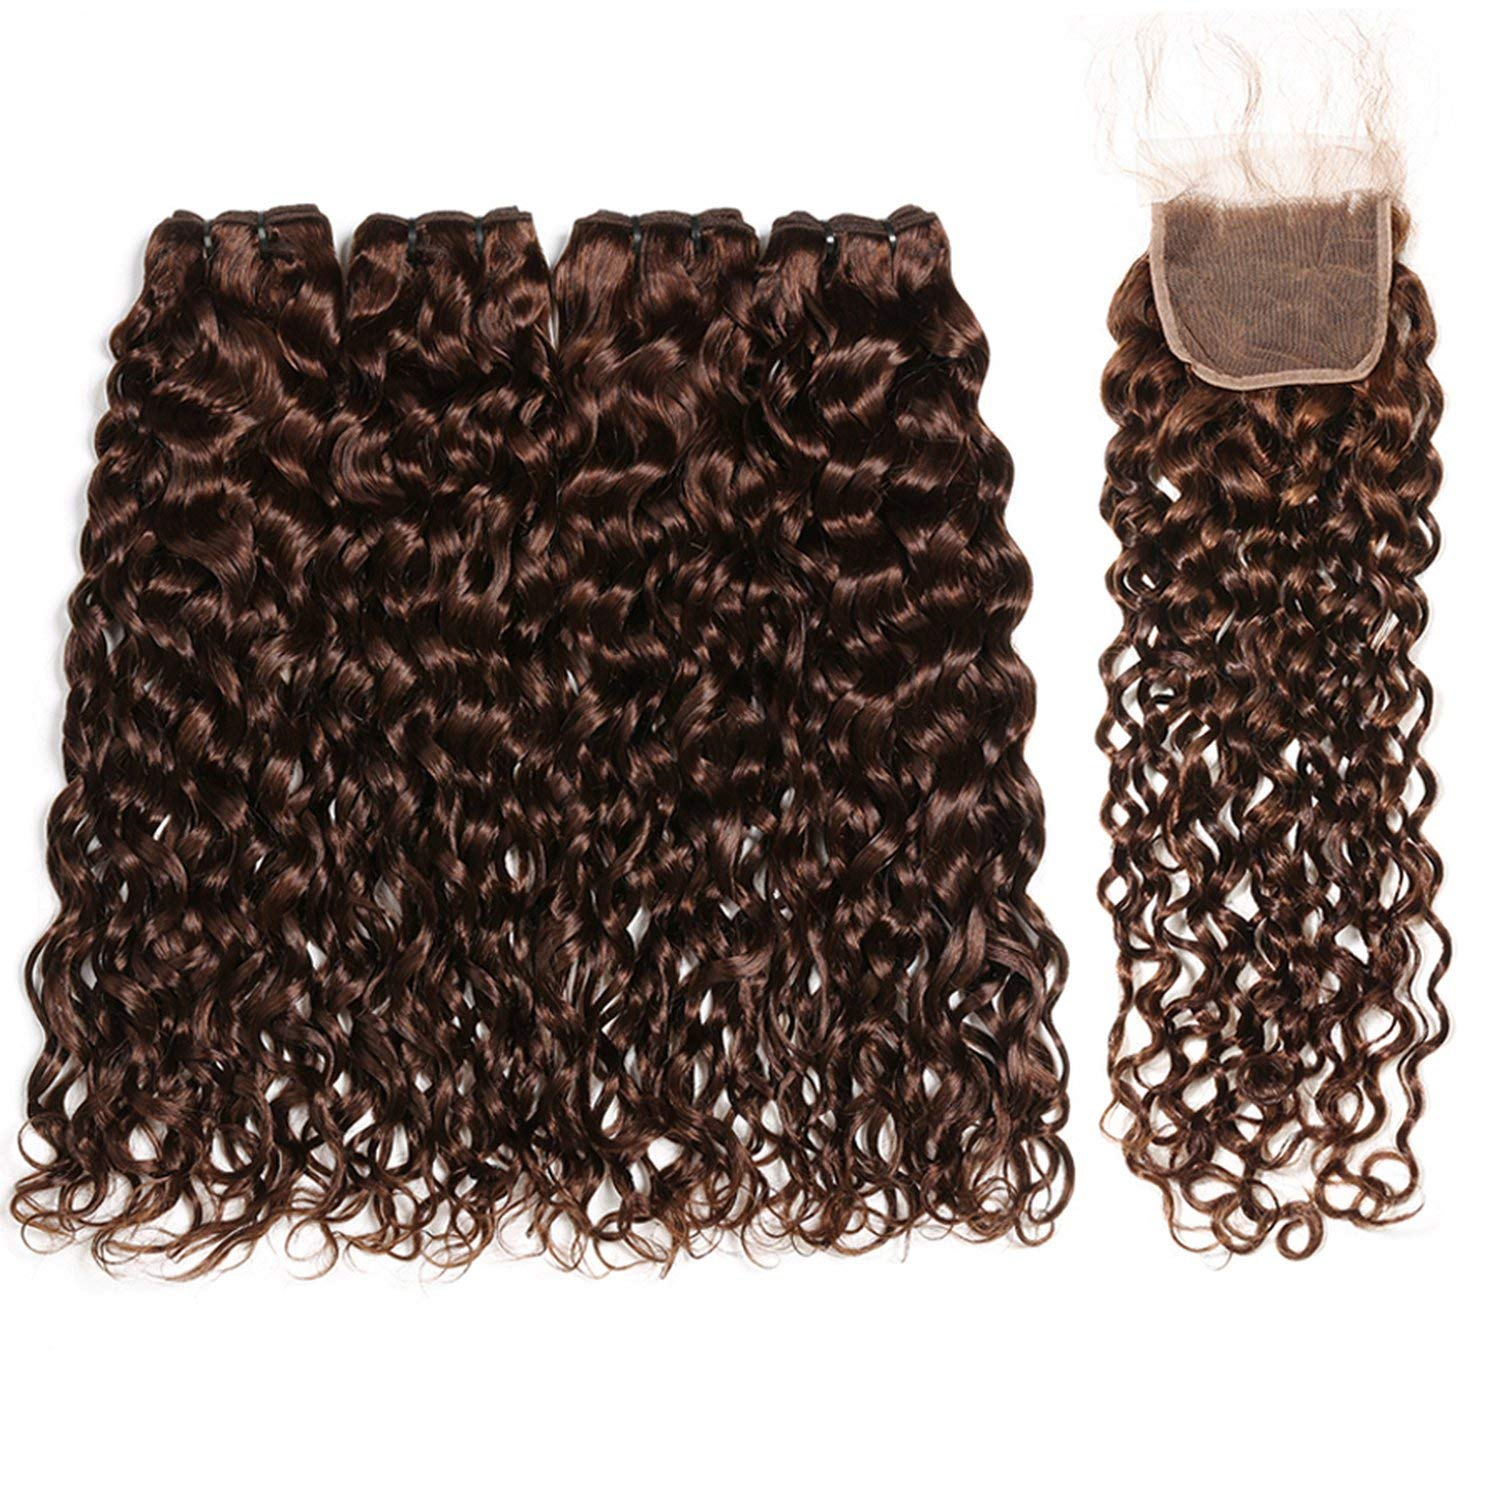 Brazilian Water Wave Bundles With Closure Light/Dark Brown Colored Human Hair Bundles With Closure Baby Hair Non Remy Romantico,14 16+12Closure,#2,Middle Part 81QMJdwXa3L._SL1500_